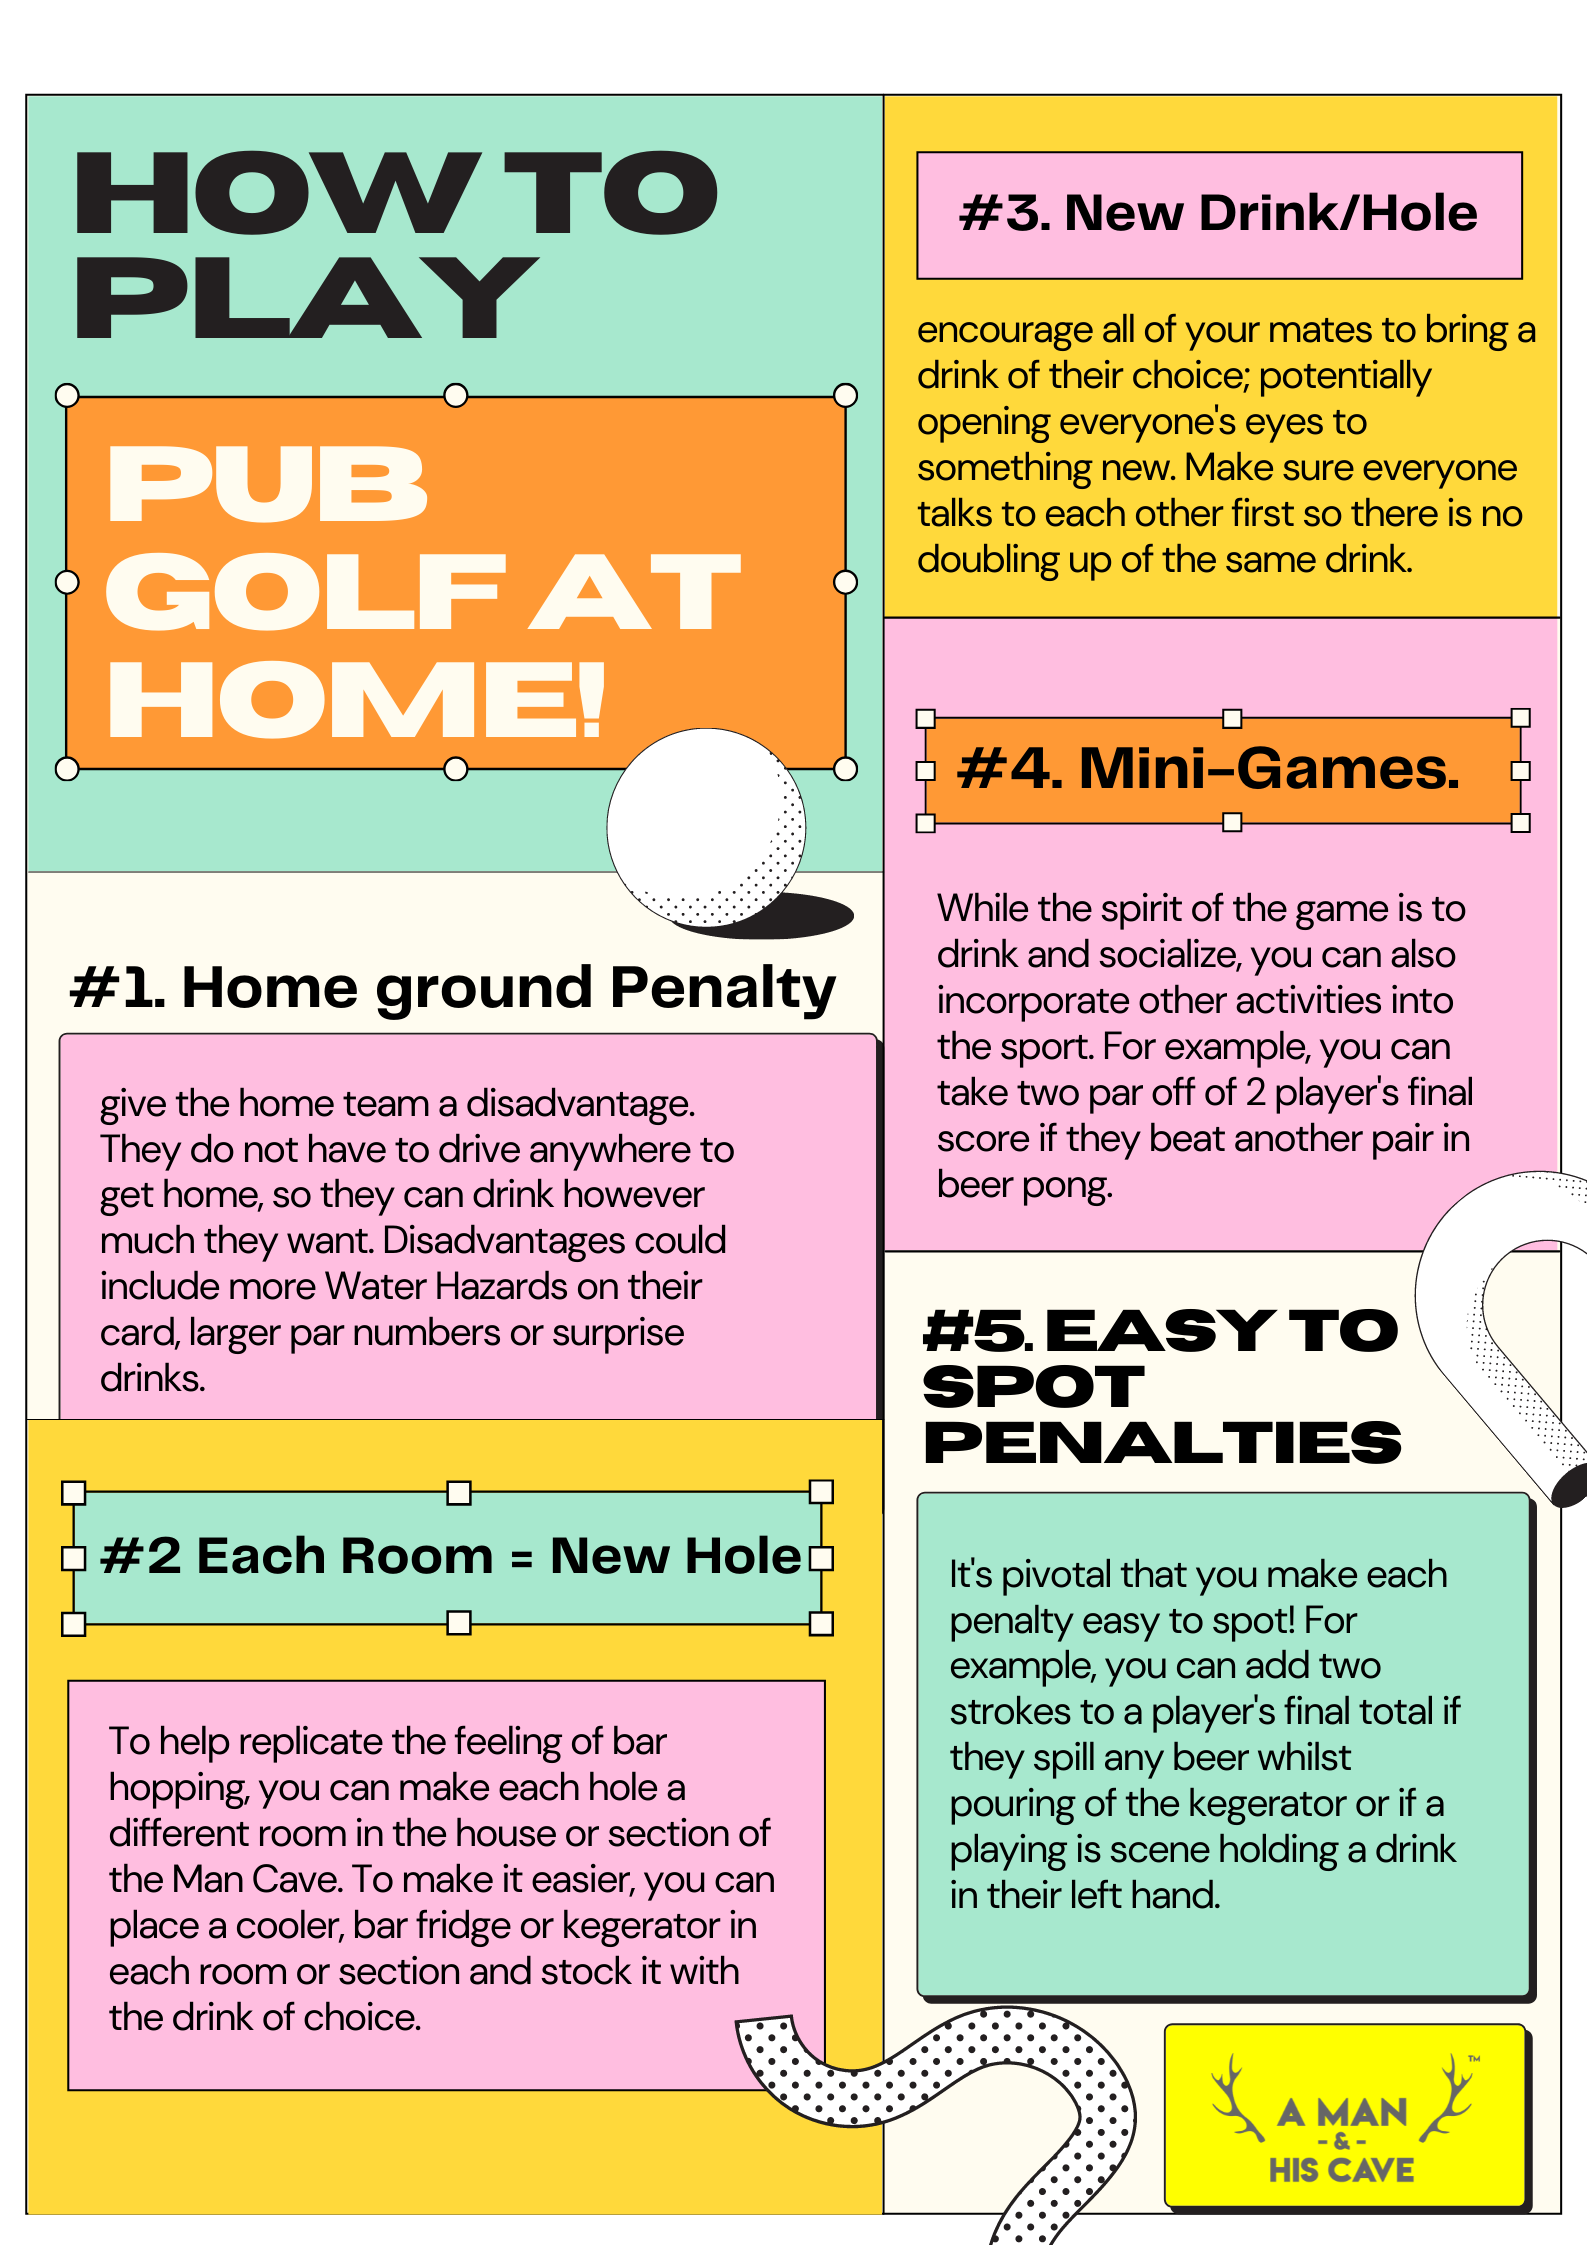 How to Use Your Man Cave to Play Pub Golf: Everything Explained Rules